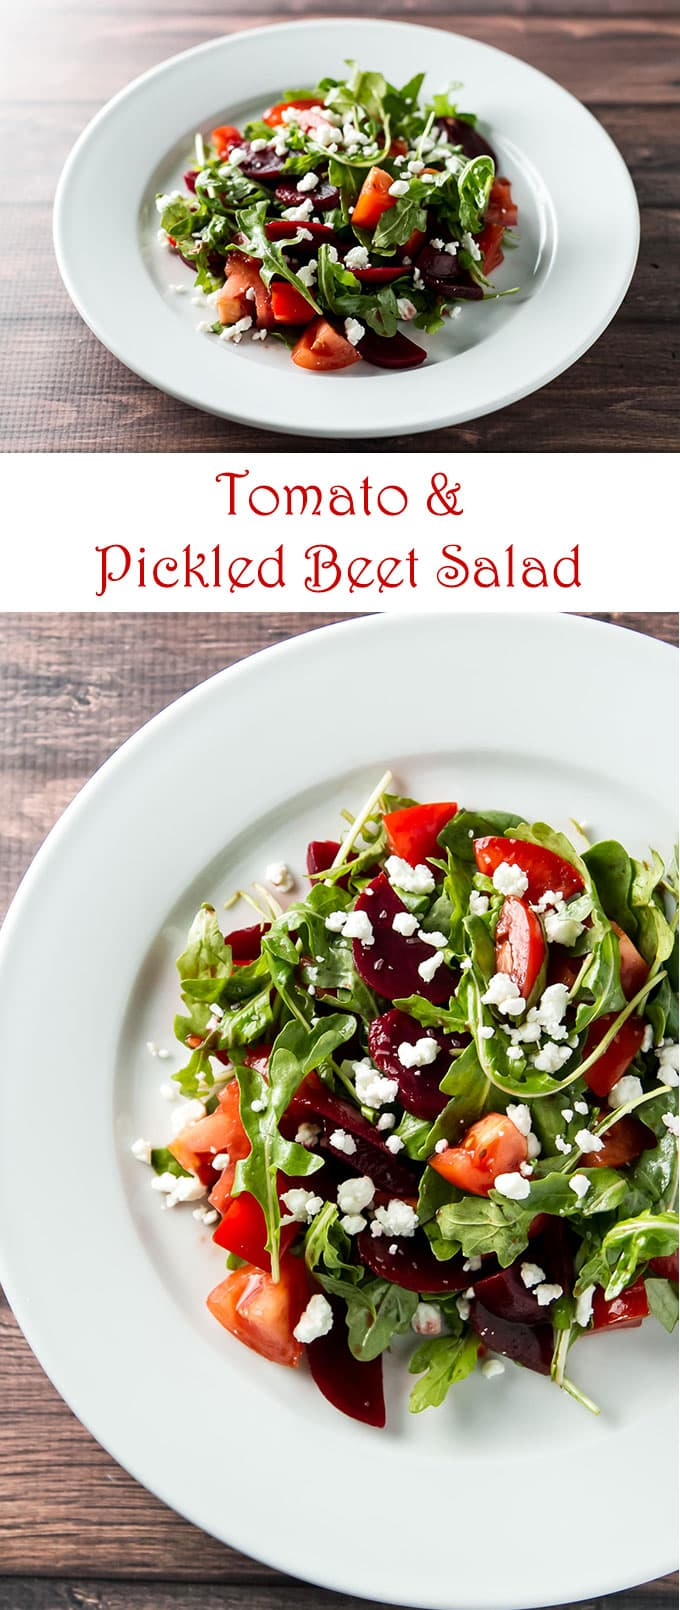 This tomato and pickled beet salad is so simple to make, but packs a lot of flavor - it's perfect for a holiday entertaining! | girlgonegourmet.com